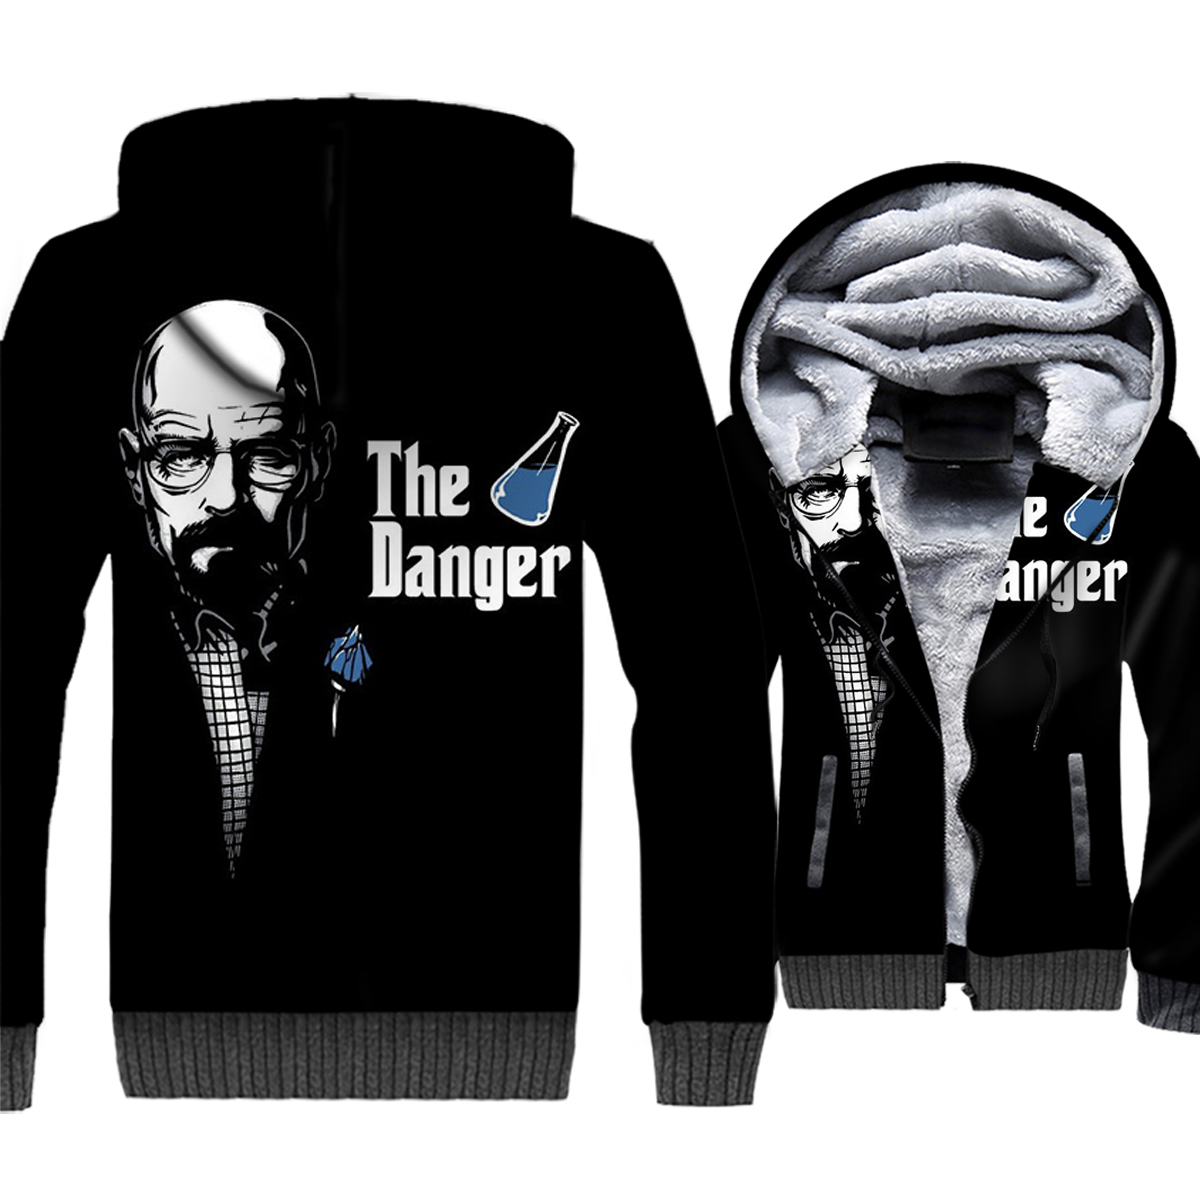 Breaking Bad Jacket Heisenberg Hoodie Men The Danger Sweatshirt Winter Thick Fleece Warm Zipper Coat Black 3D Print Streetwear